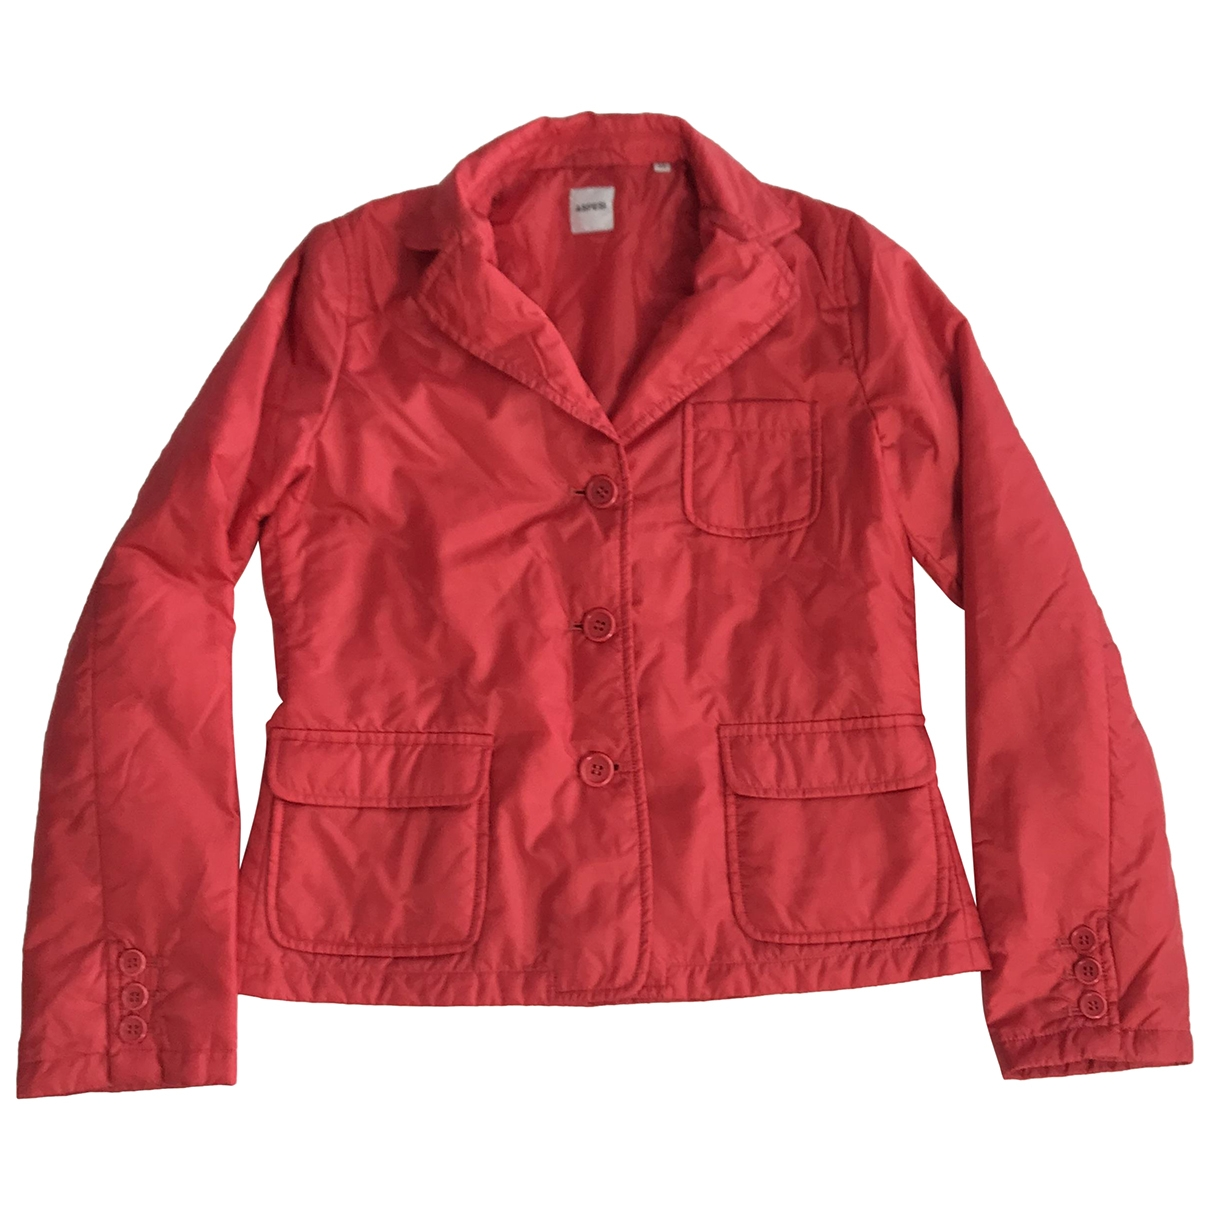 Aspesi \N Red jacket & coat for Kids 12 years - XS FR